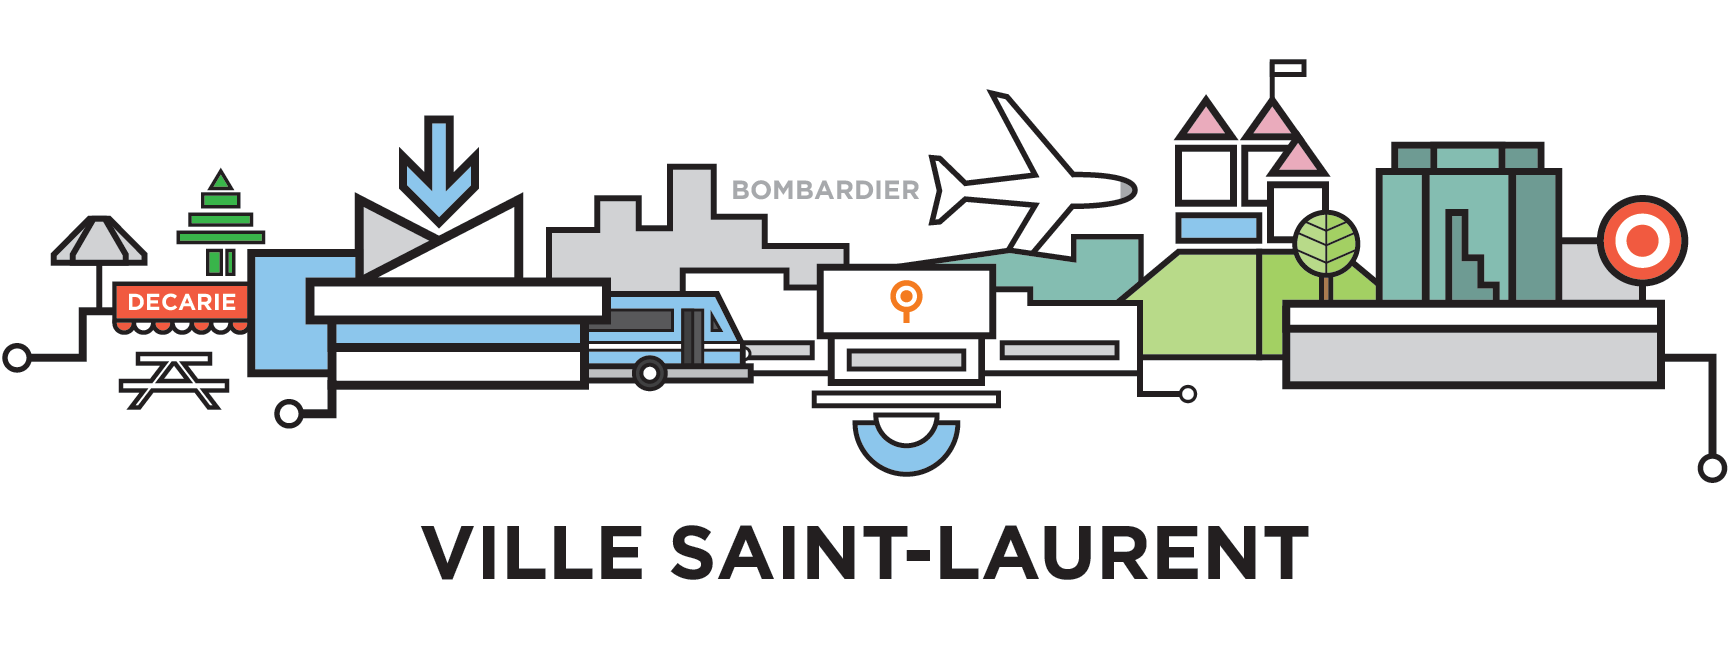 mtl-ville-saint-laurent-cityline-illustration-by-loogart